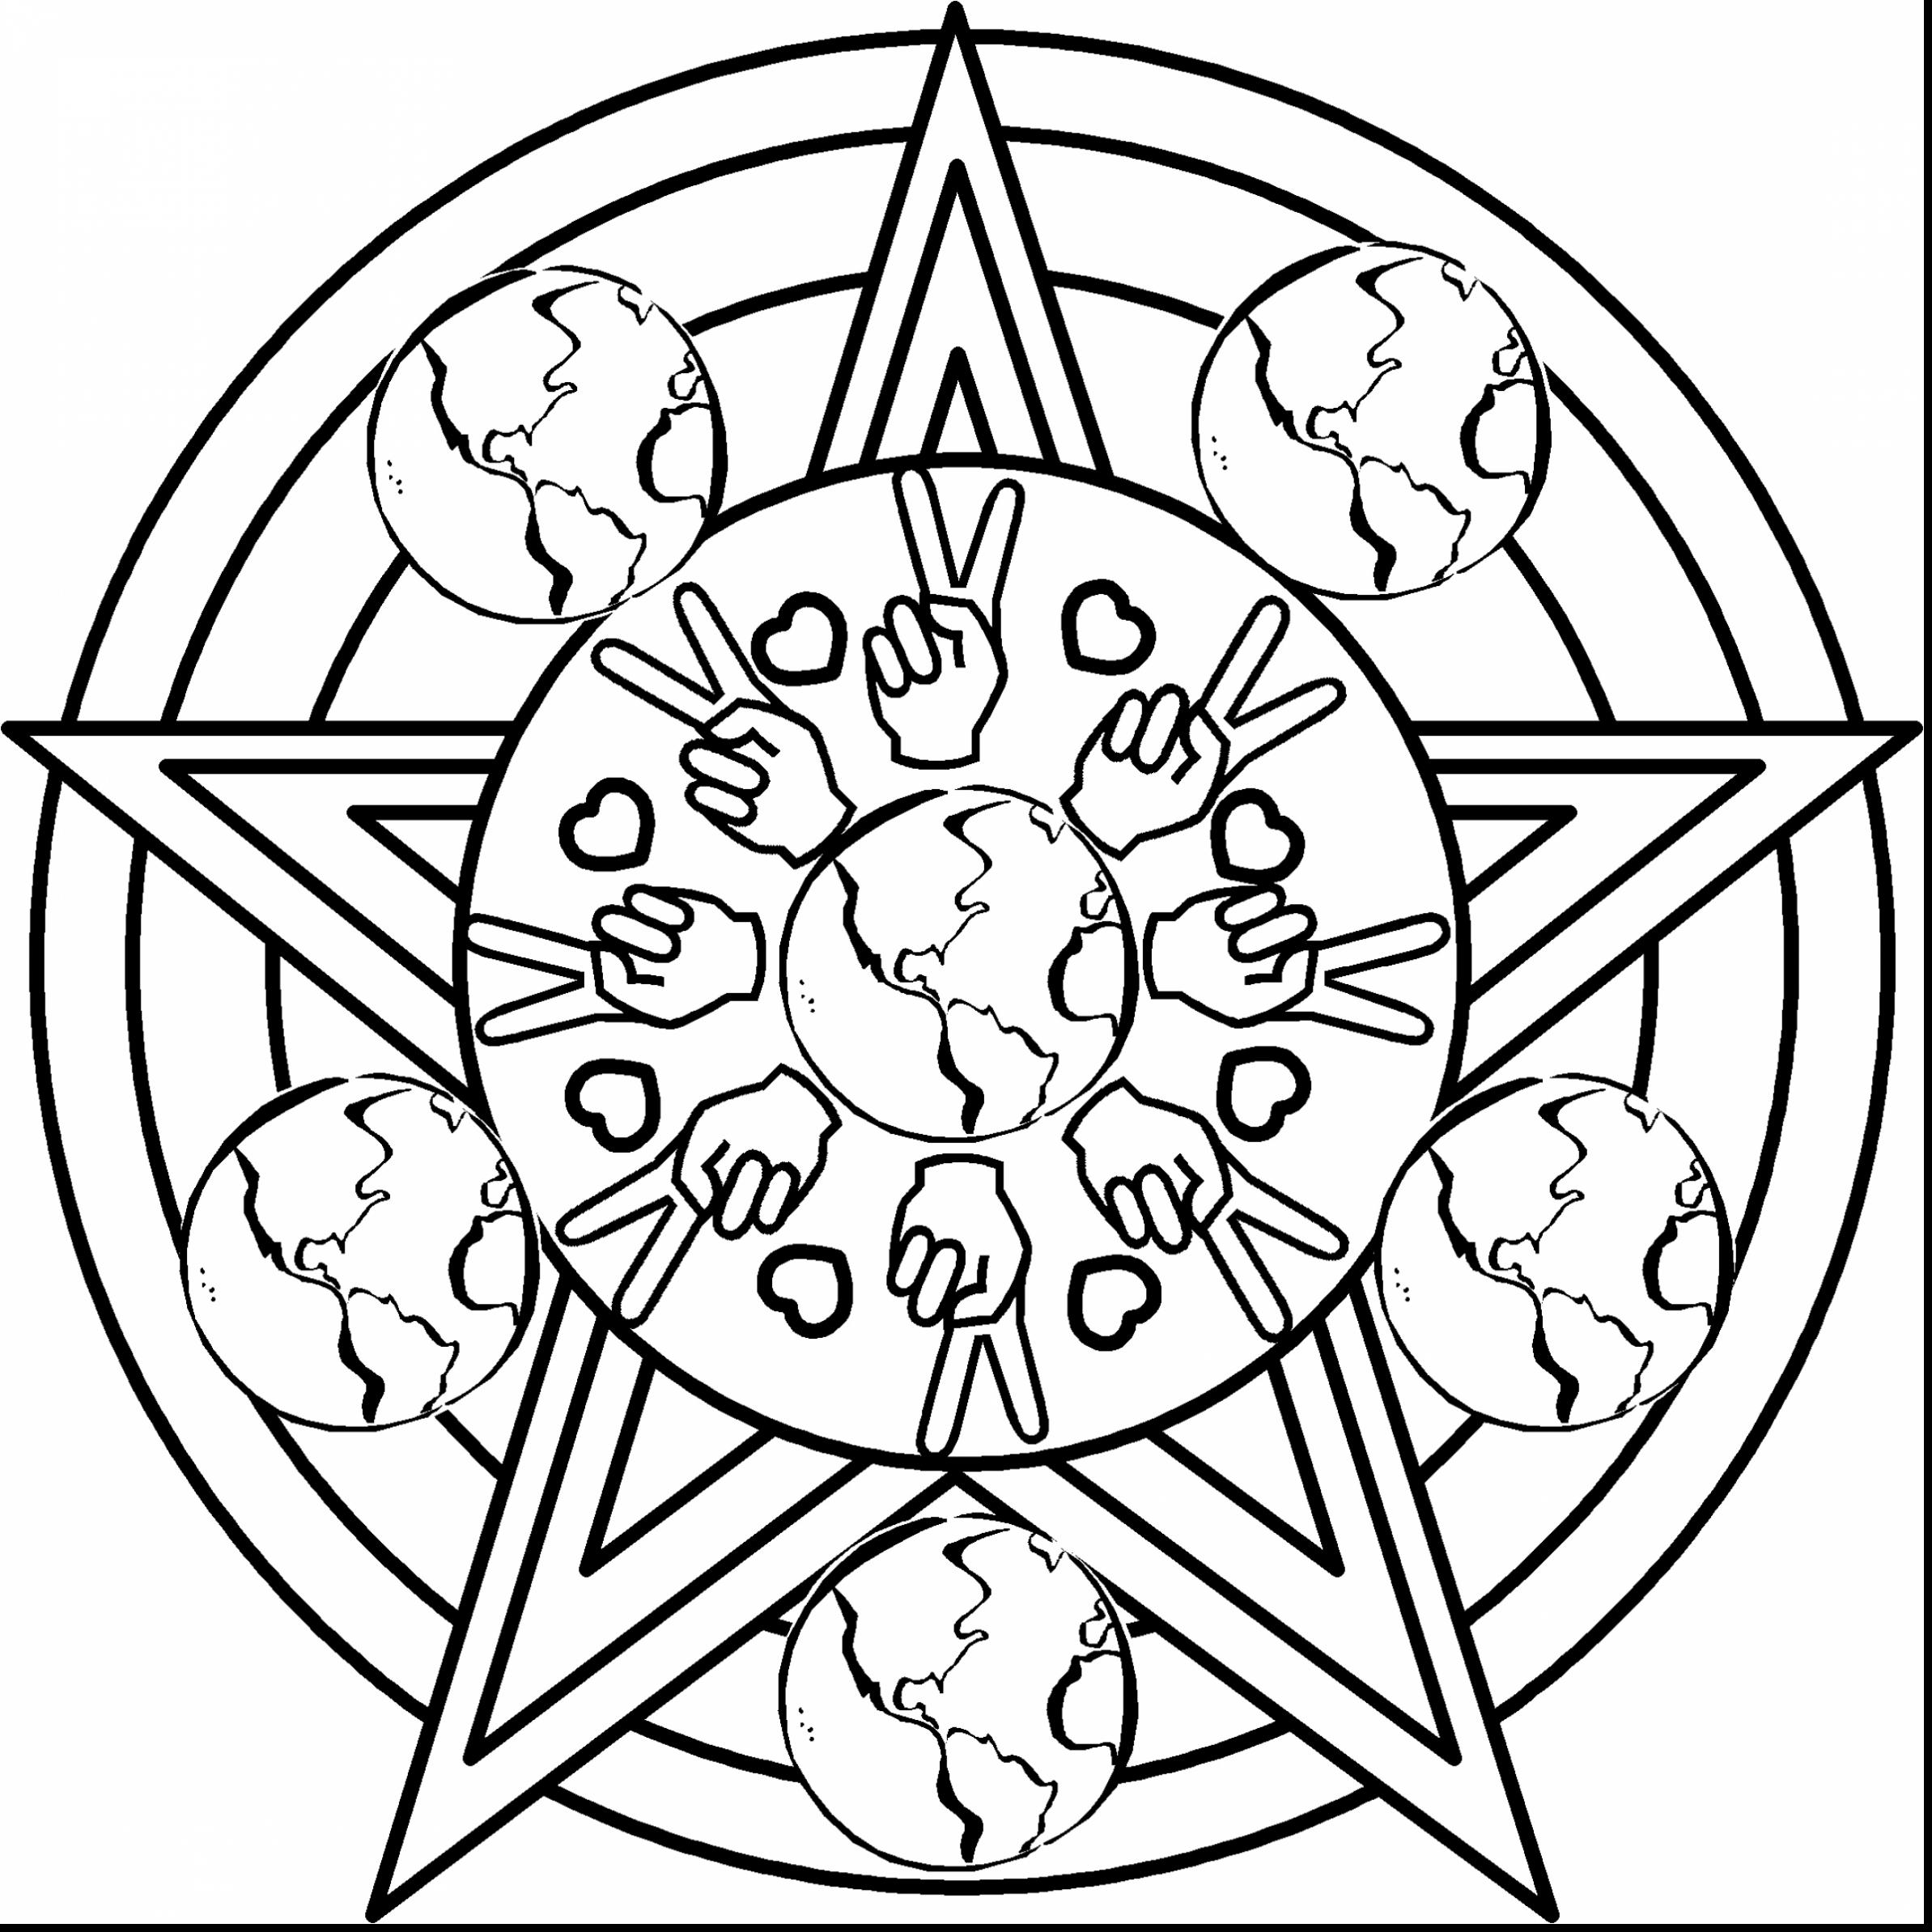 2387x2387 Free Owl Coloring Pages Targer Golden Dragon Excellent Modern Art